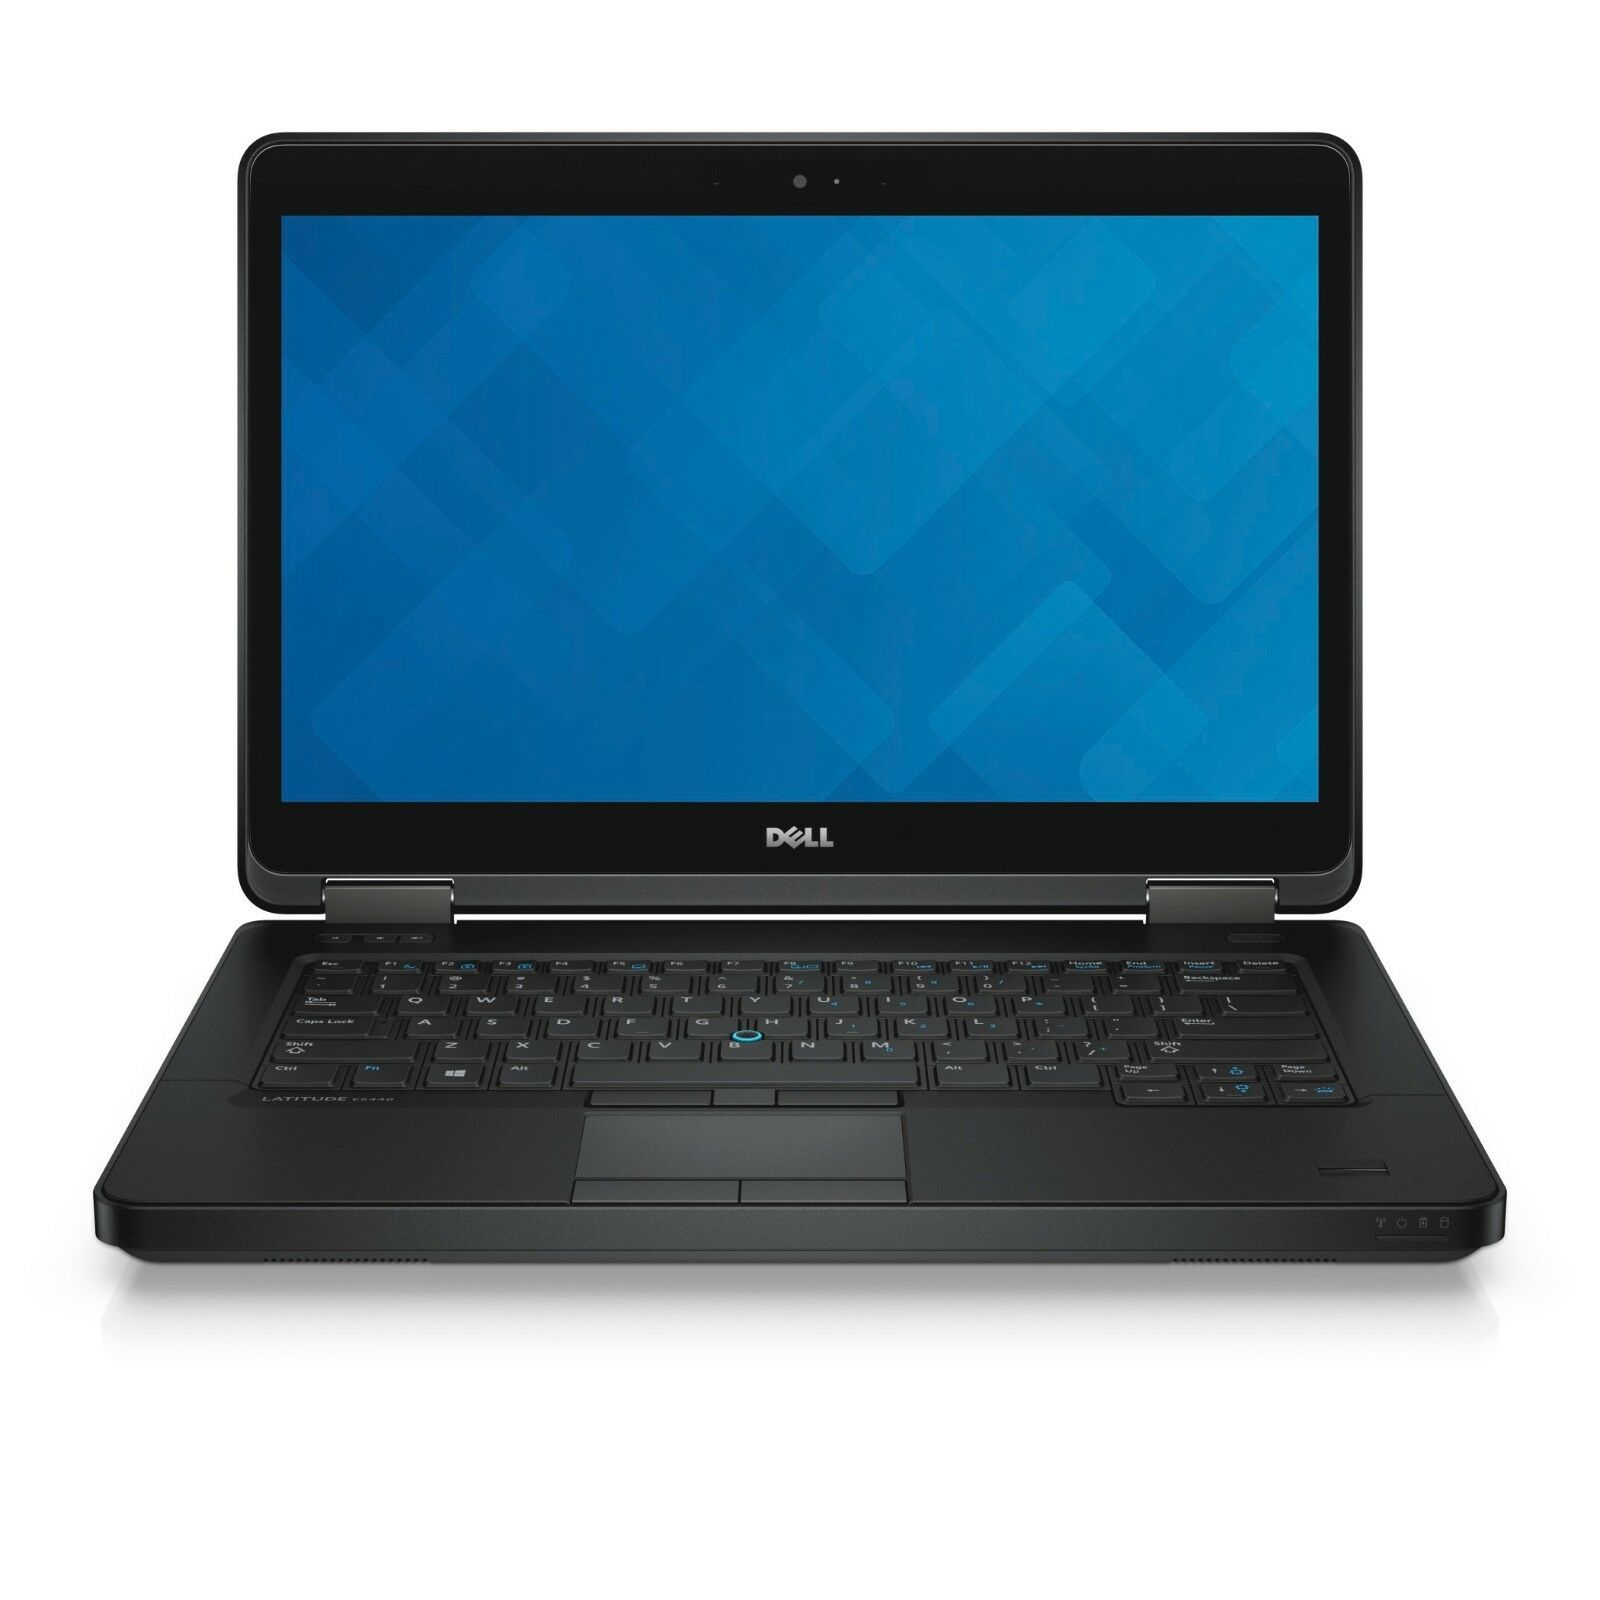 E5440 14in. I5 4300 4gb ram 320GB HD